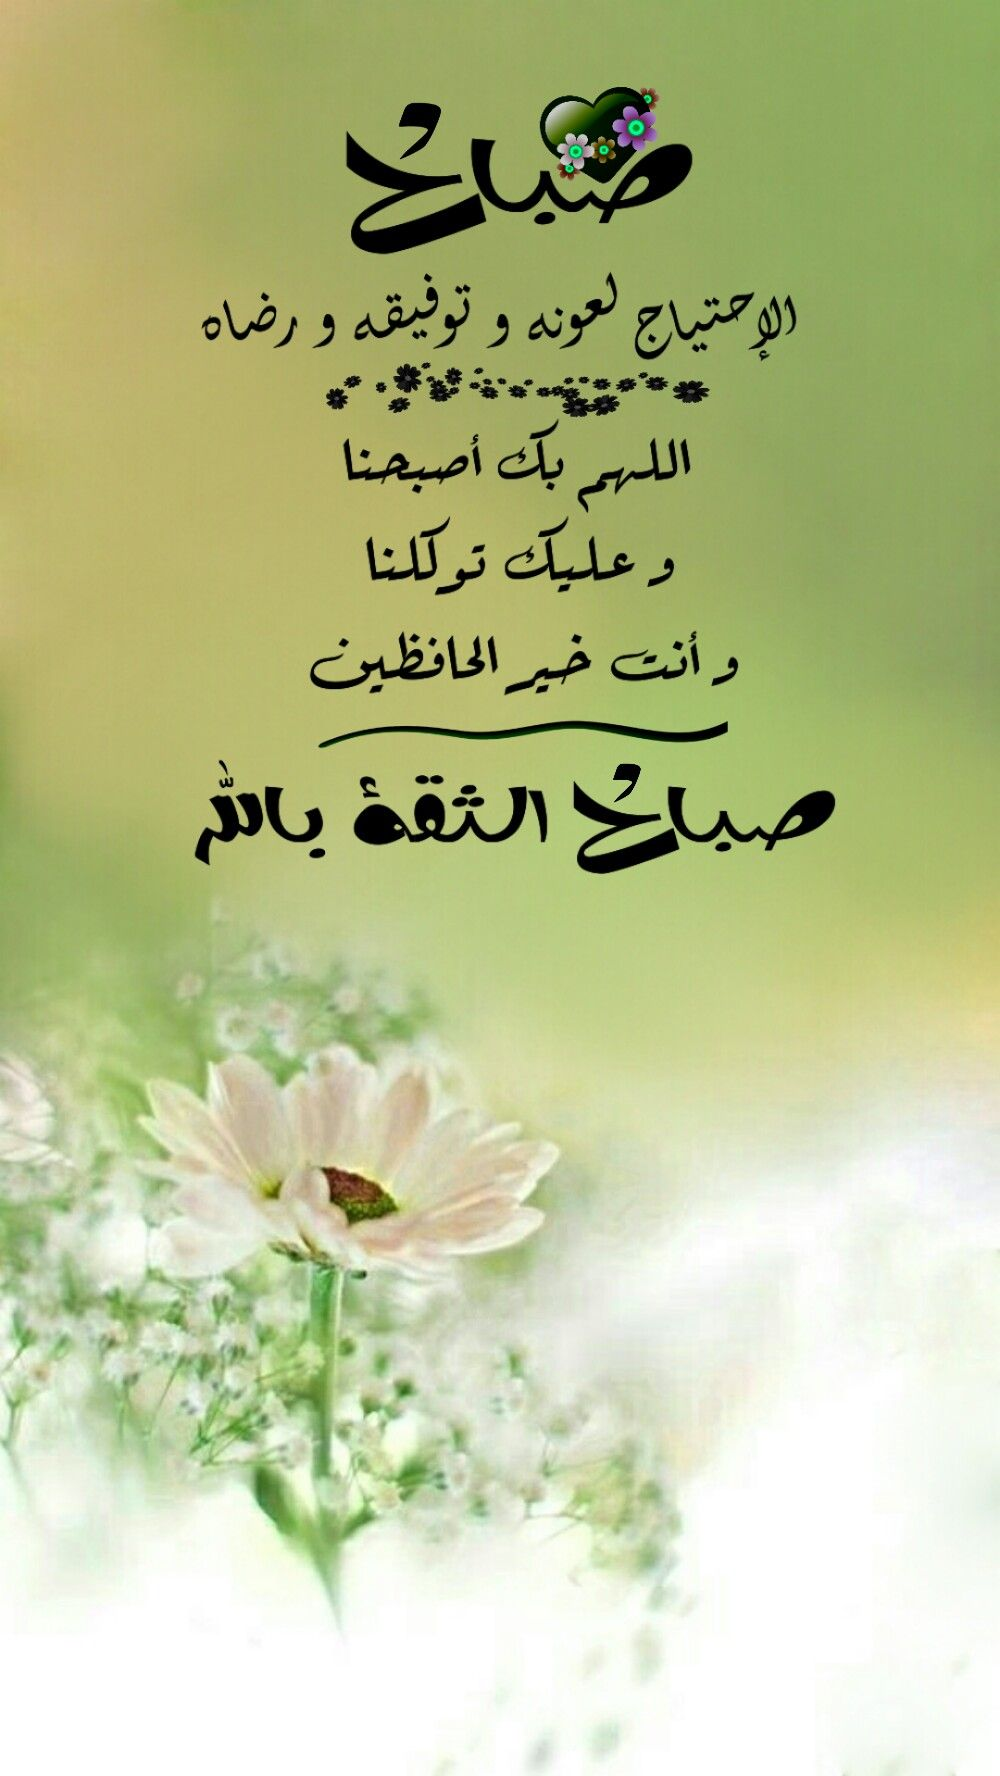 Pin By Ranya Anis On صباحيات و مسائيات Lovely Quote Home Decor Decals Quran Quotes